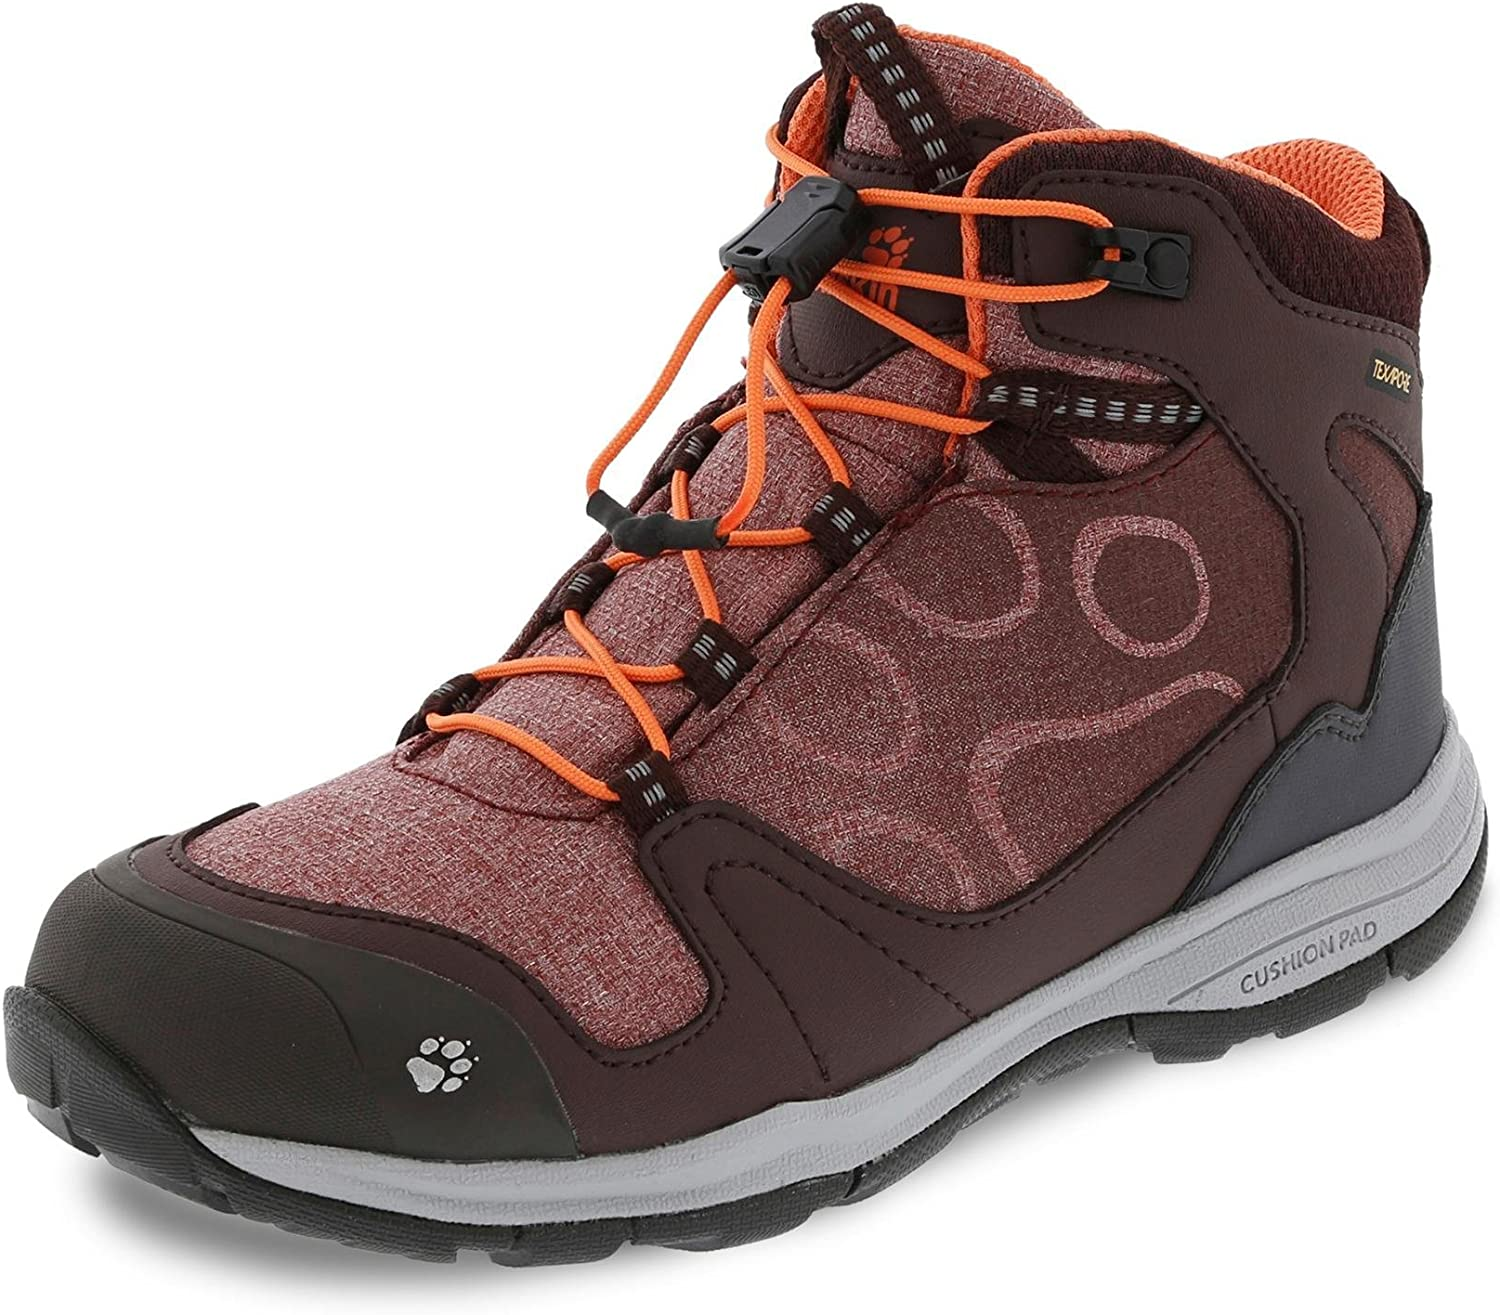 Jack Wolfskin Grivla Texapore shoes Red shoes Size 37 2017